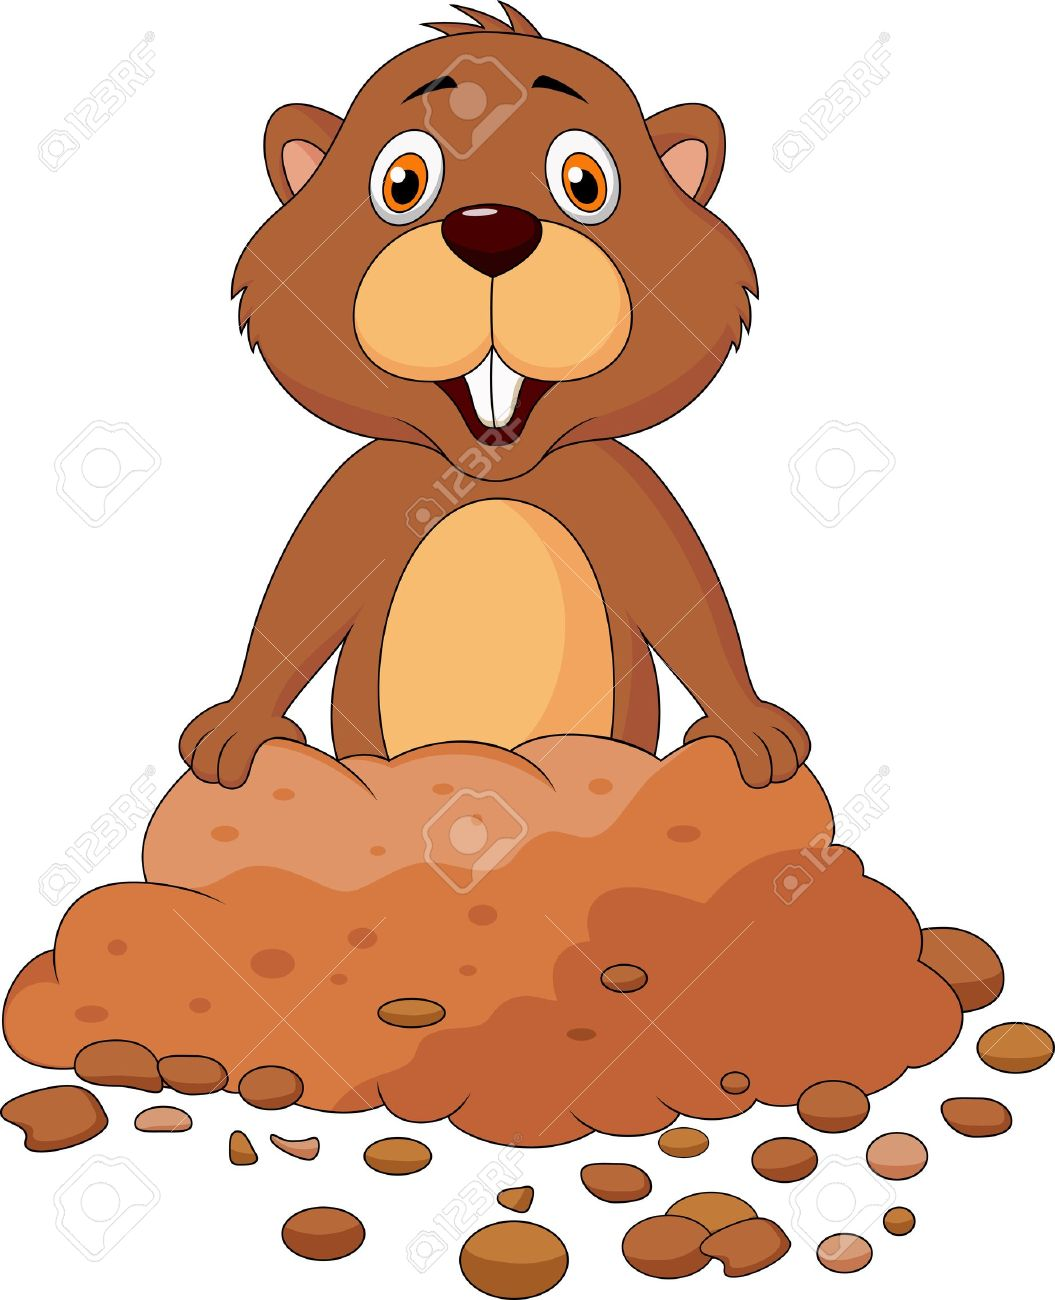 Groundhog clipart 7 » Clipart Station.